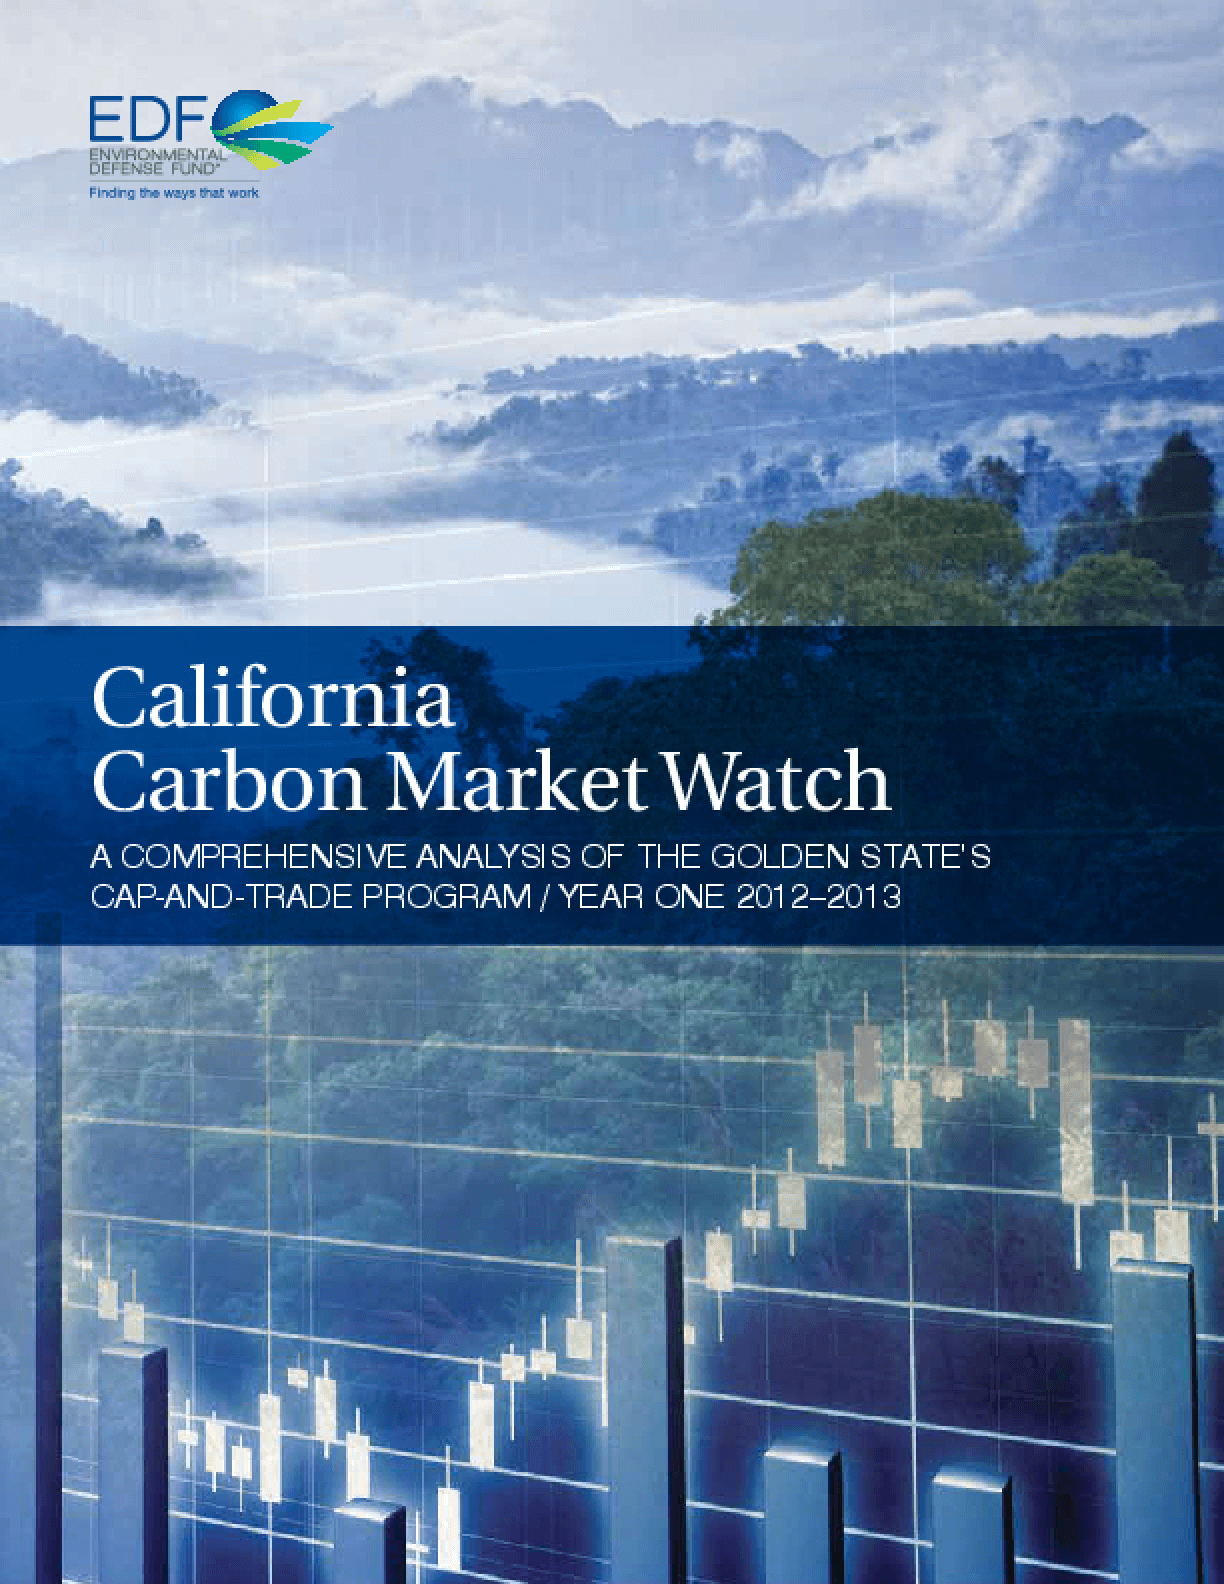 California Carbon Market Watch: A Comprehensive Analysis of the Golden State's Cap-and-Trade Program, Year One - 2012-2013